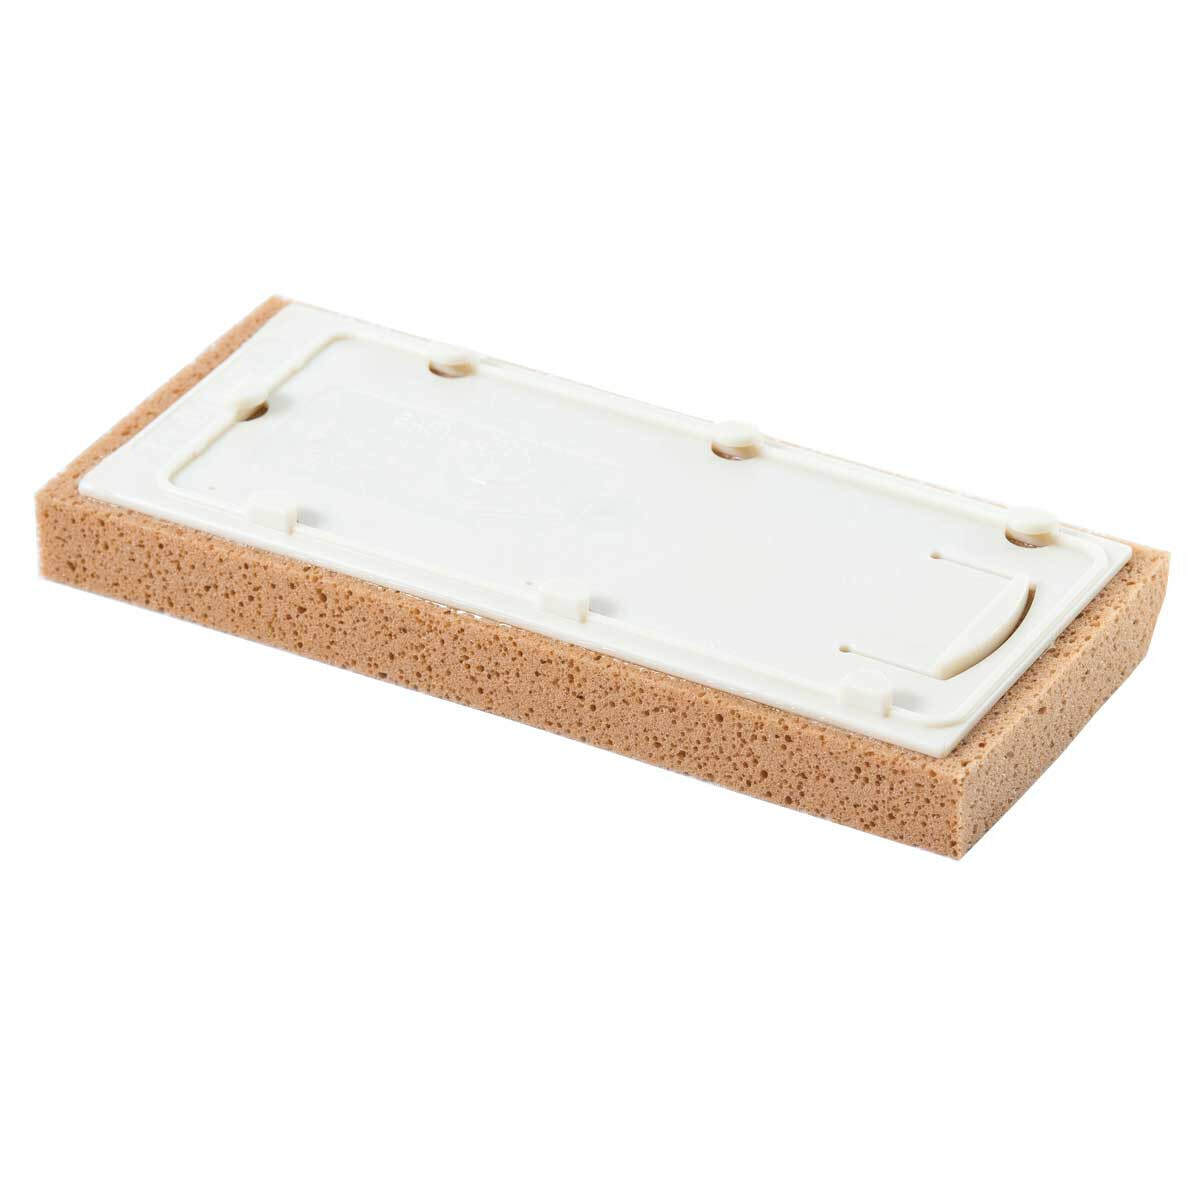 Raimondi Yellow Grout Sponge